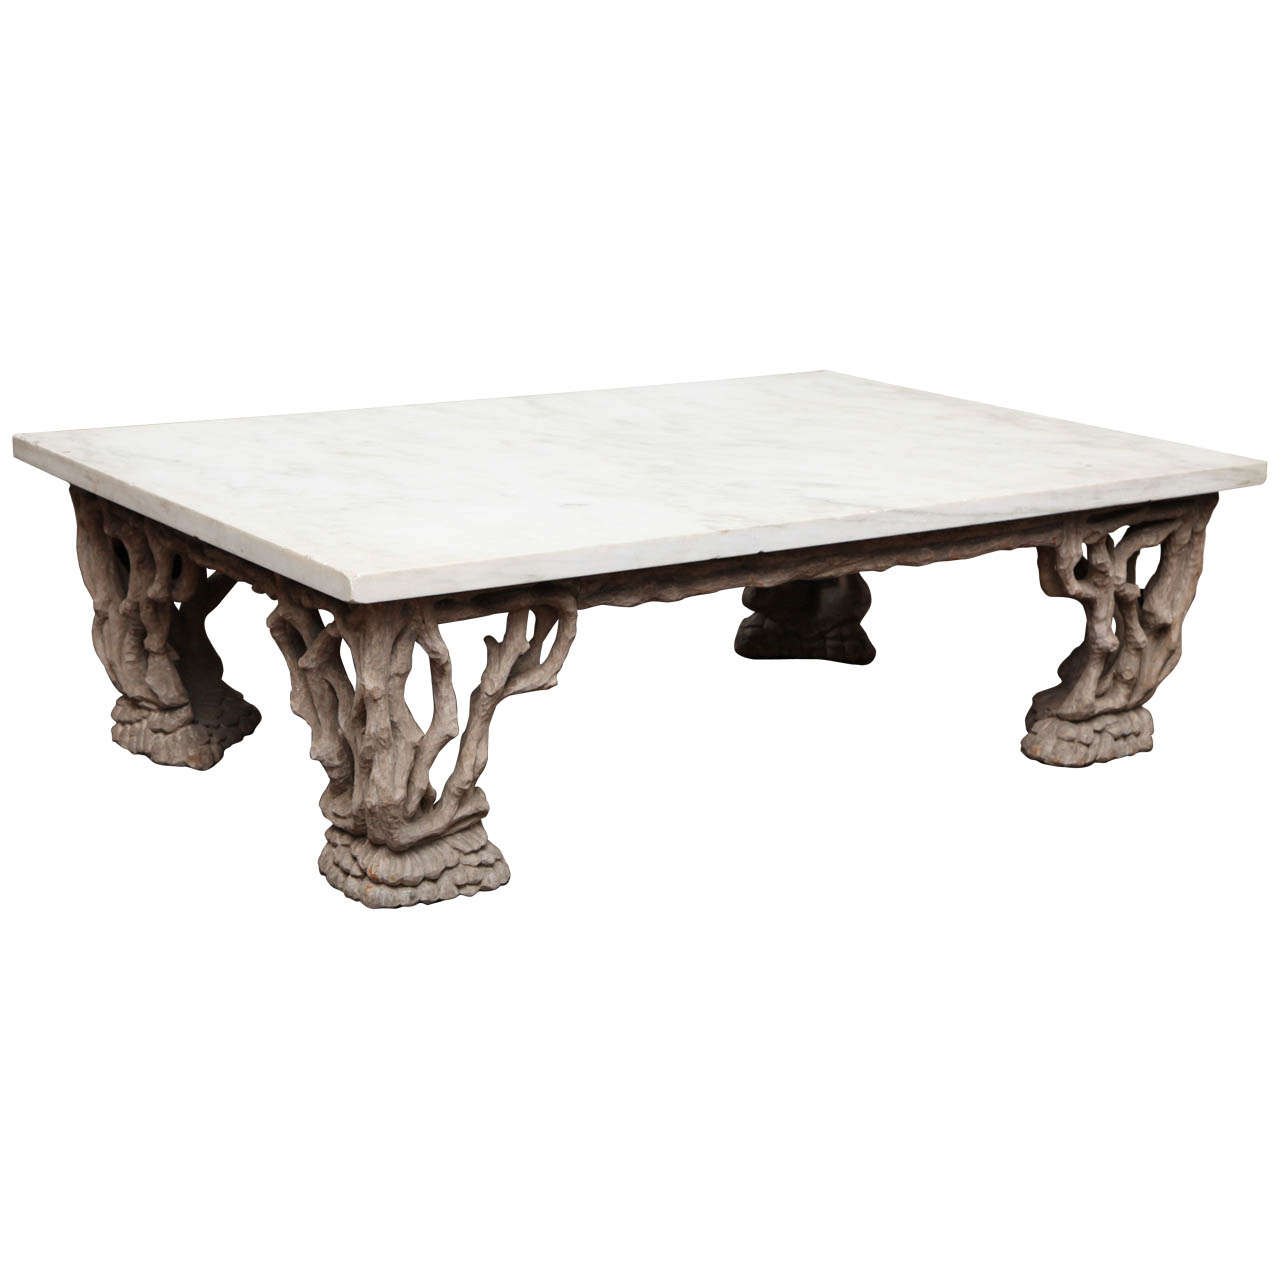 Handmade Marble Coffee Table At 1stdibs